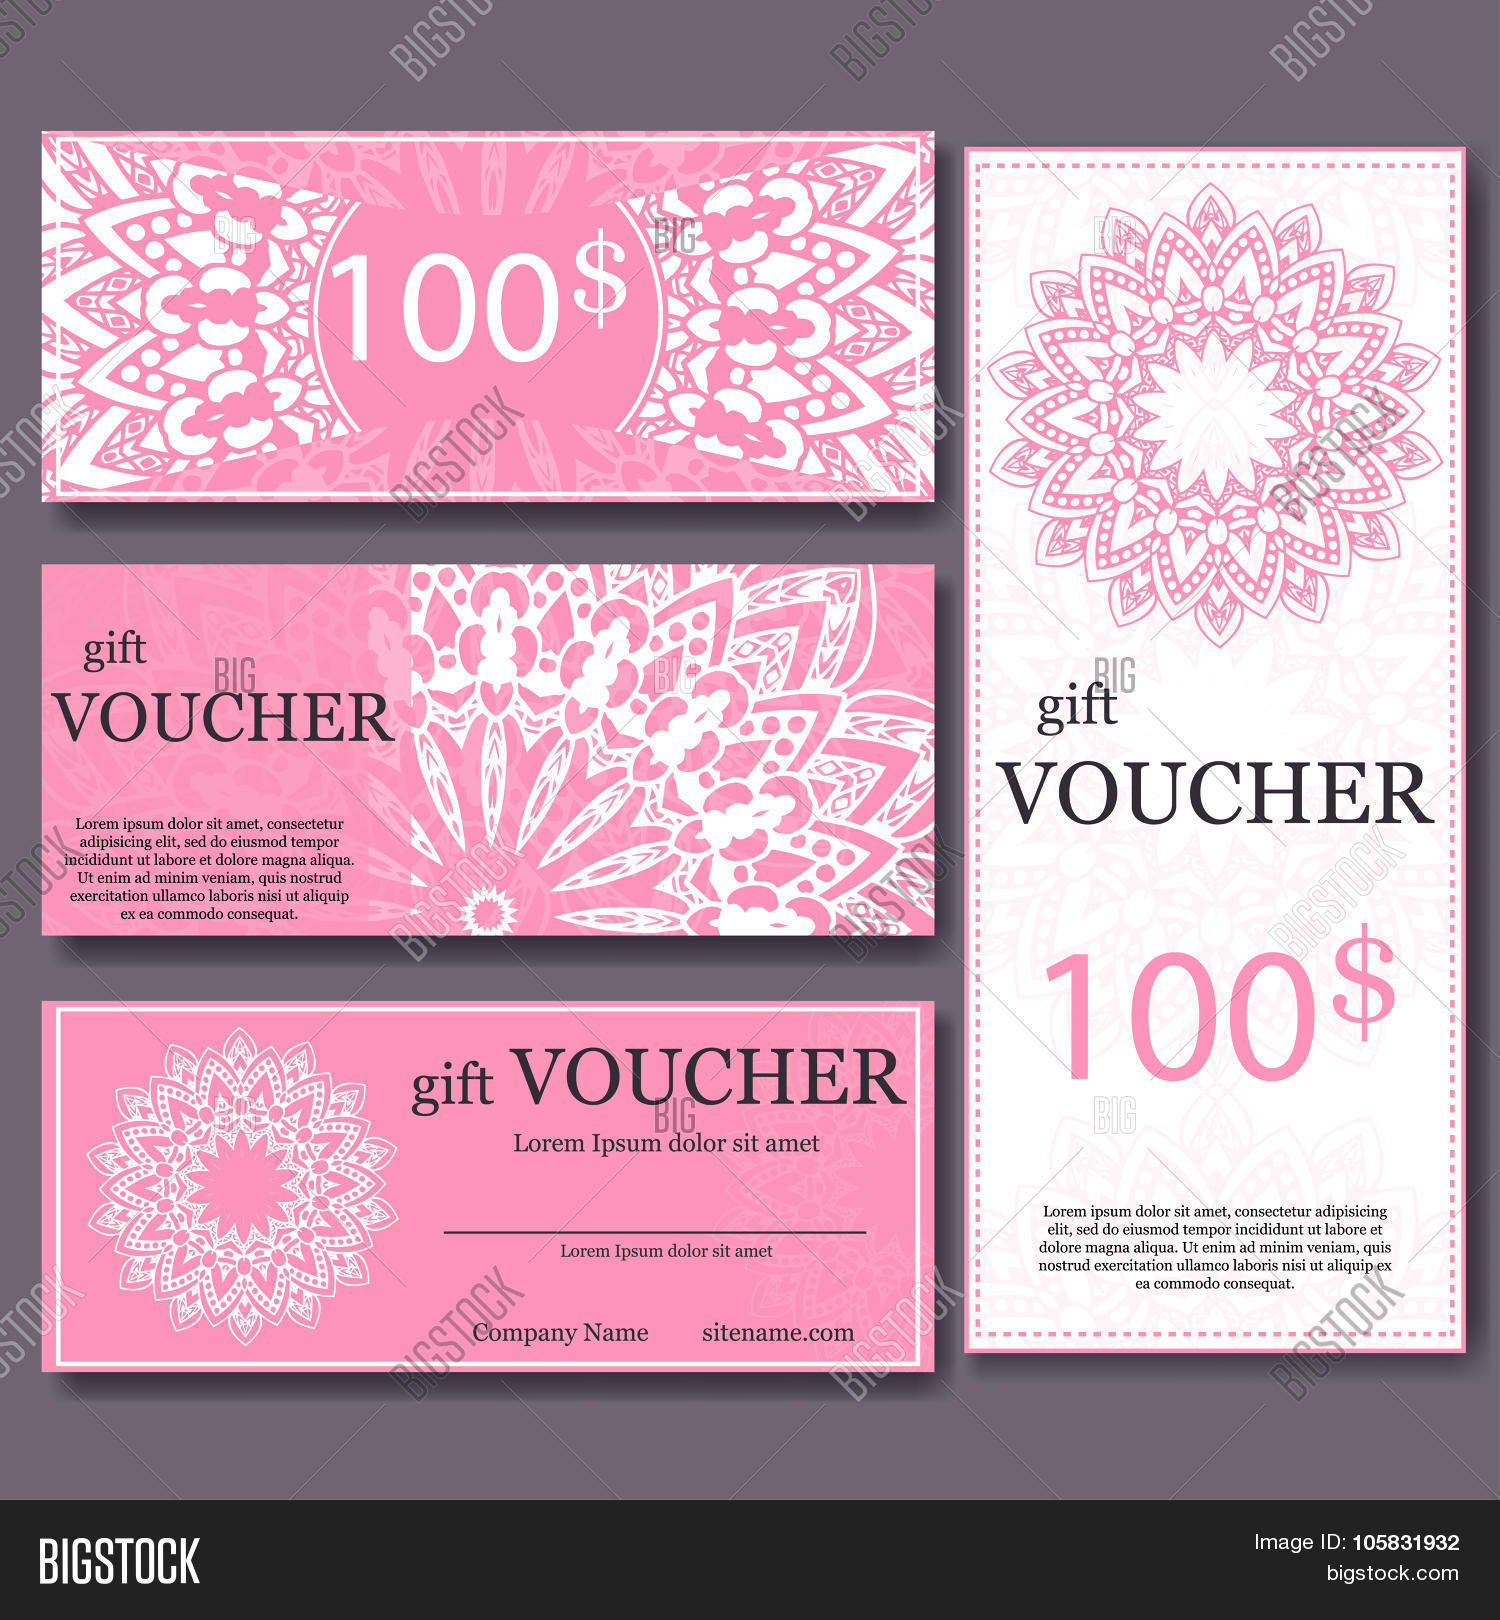 Gift voucher template mandala vector photo bigstock gift voucher template with mandala design certificate for sport center magazine or etc alramifo Images